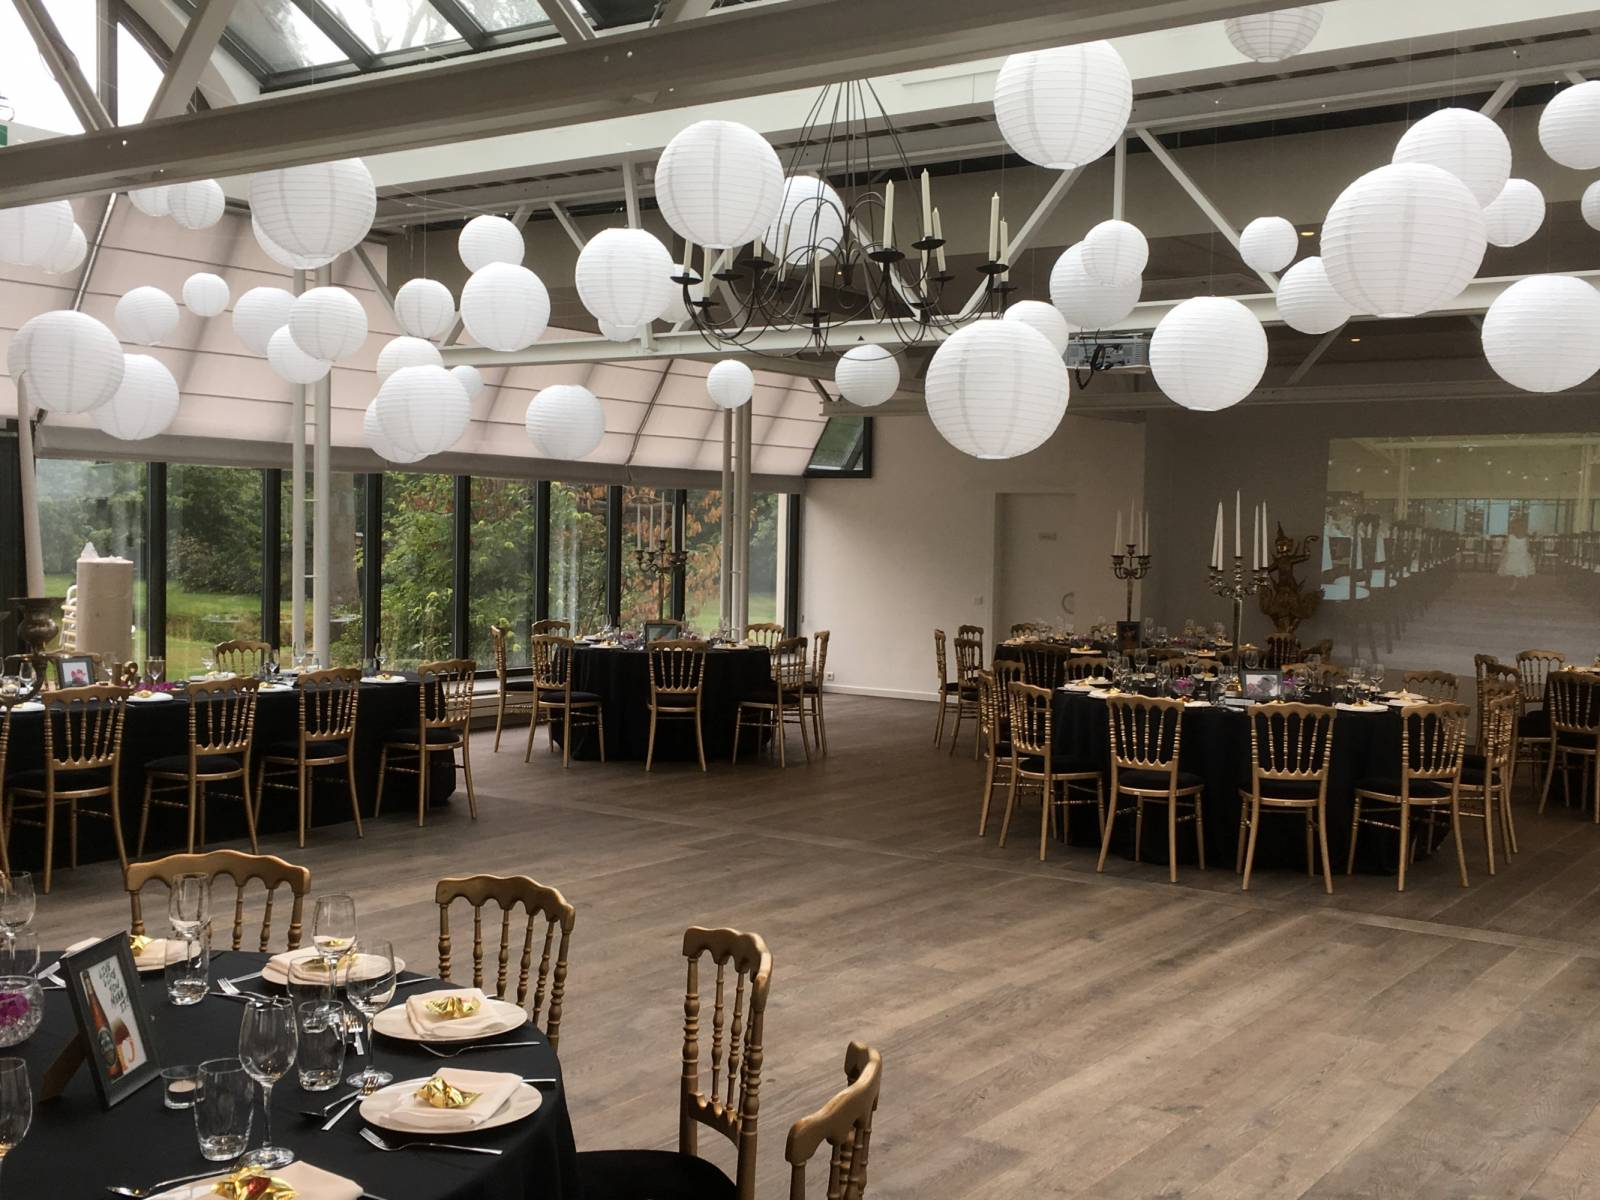 House of Weddings Kasteel Te Lake Feestzaal Oost-Vlaanderen Catering Ceremonie Zulte Gent (17)